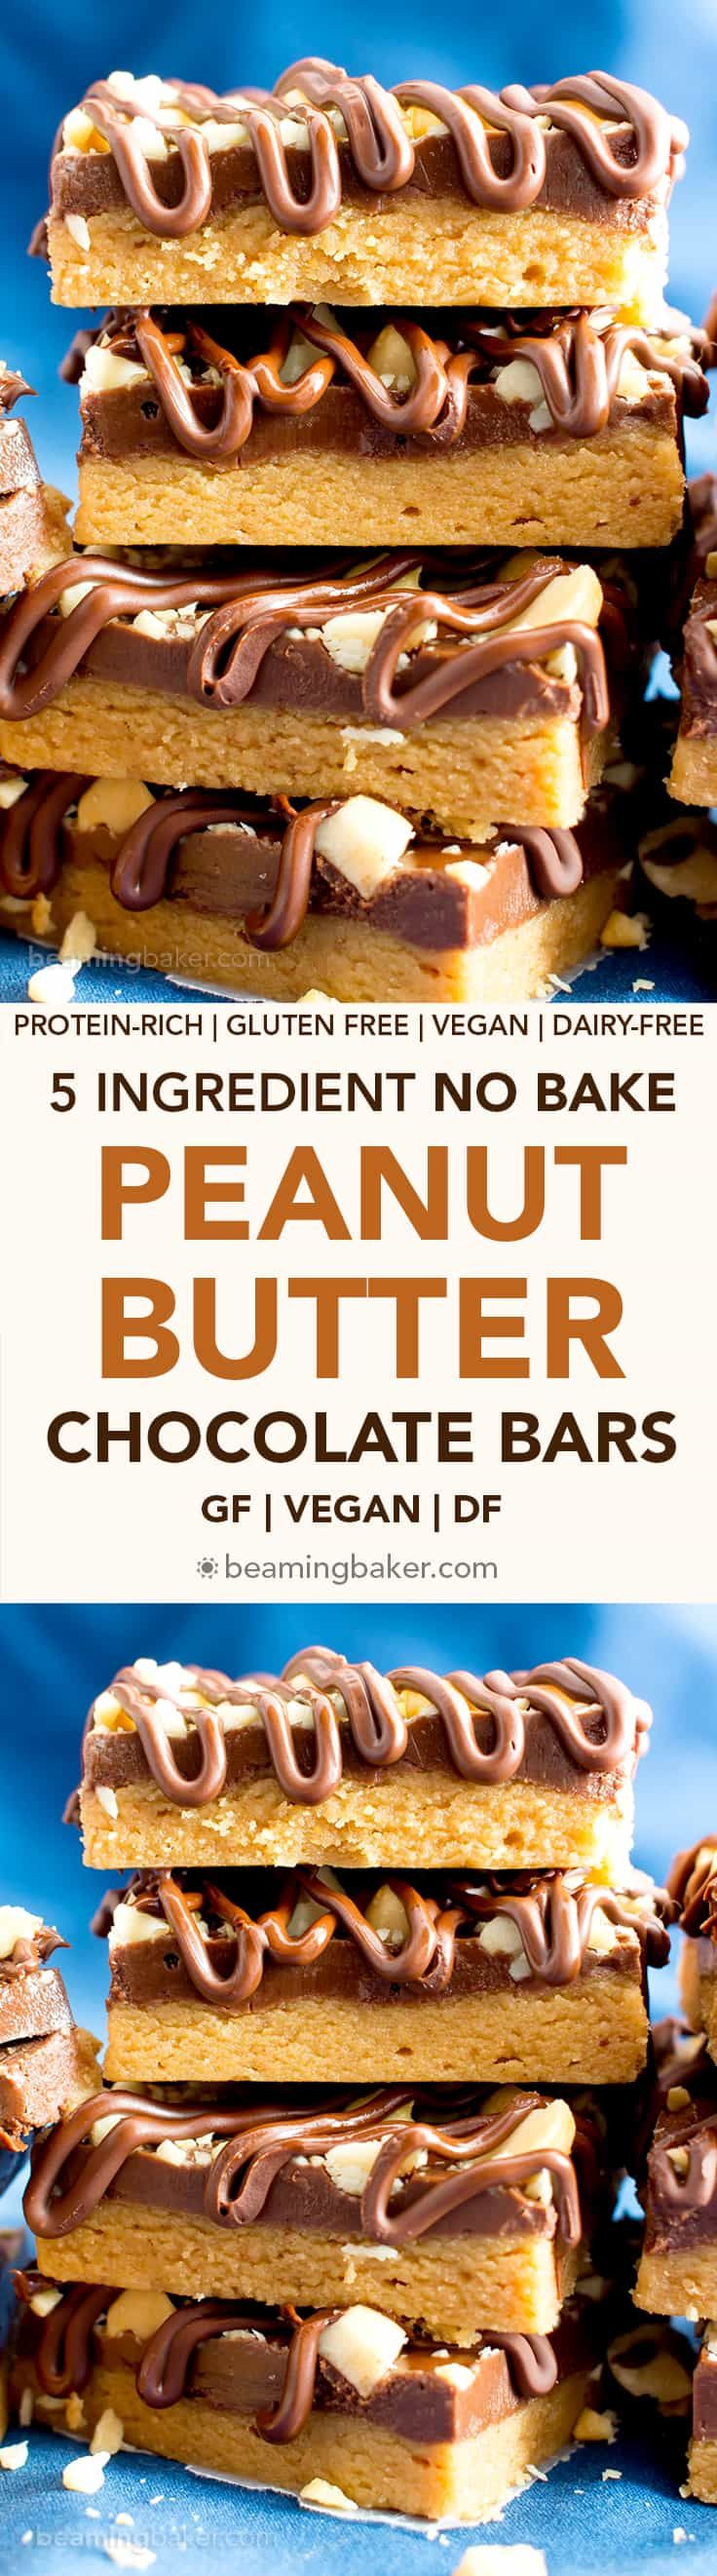 5 Ingredient Ultimate No Bake Chocolate Peanut Butter Bars (V, GF): The ULTIMATE chocolate peanut butter lover's Reese's peanut butter cup inspired dessert bar: thick layers of chocolate and peanut butter topped with crunchy peanuts and velvety chocolate drizzle. #Vegan #HealthyDesserts #ProteinRich #Snacks #GlutenFree #DairyFree #PeanutButter | Recipe on BeamingBaker.com